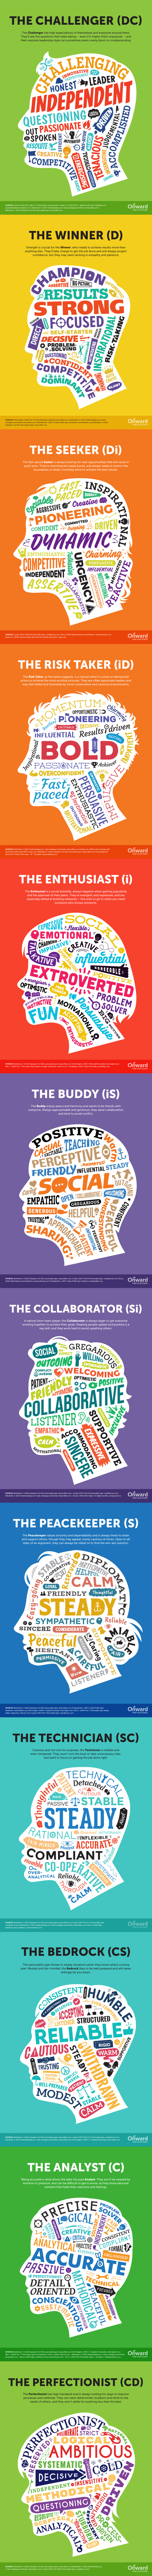 Word Map Personality Types [Infographic]